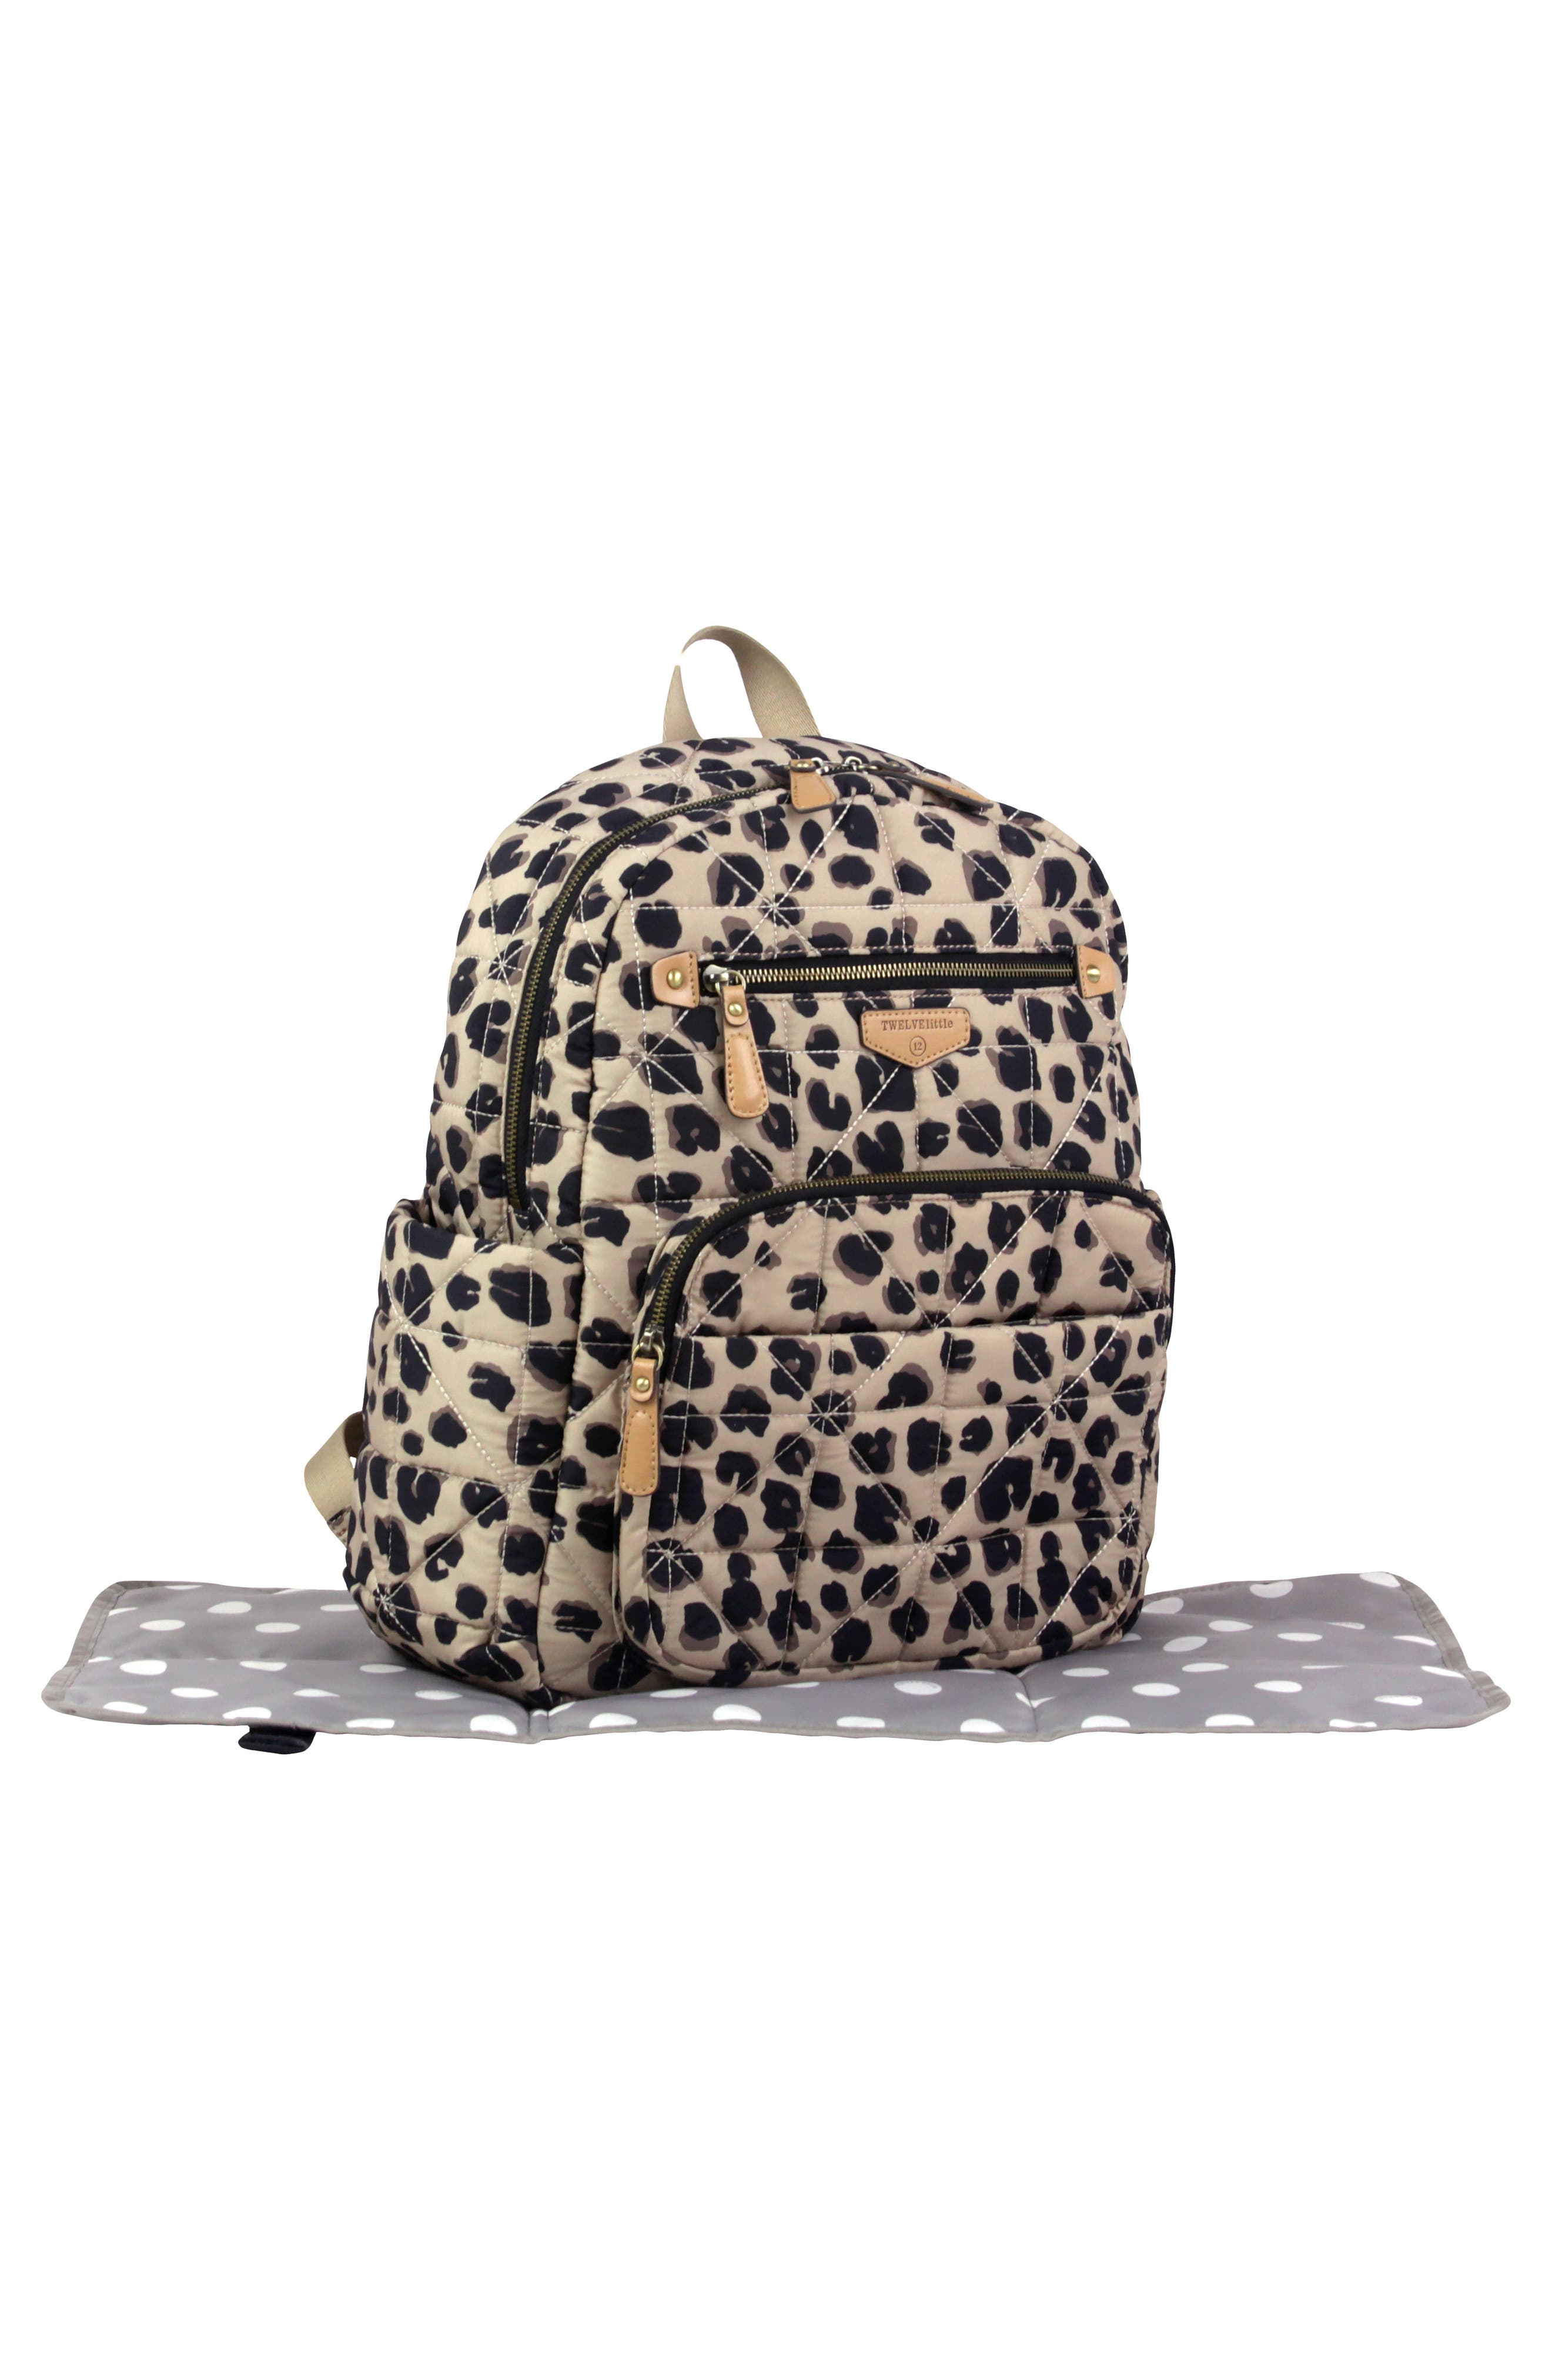 Quilted Water Resistant Nylon Diaper Backpack,                             Alternate thumbnail 5, color,                             LEOPARD PRINT